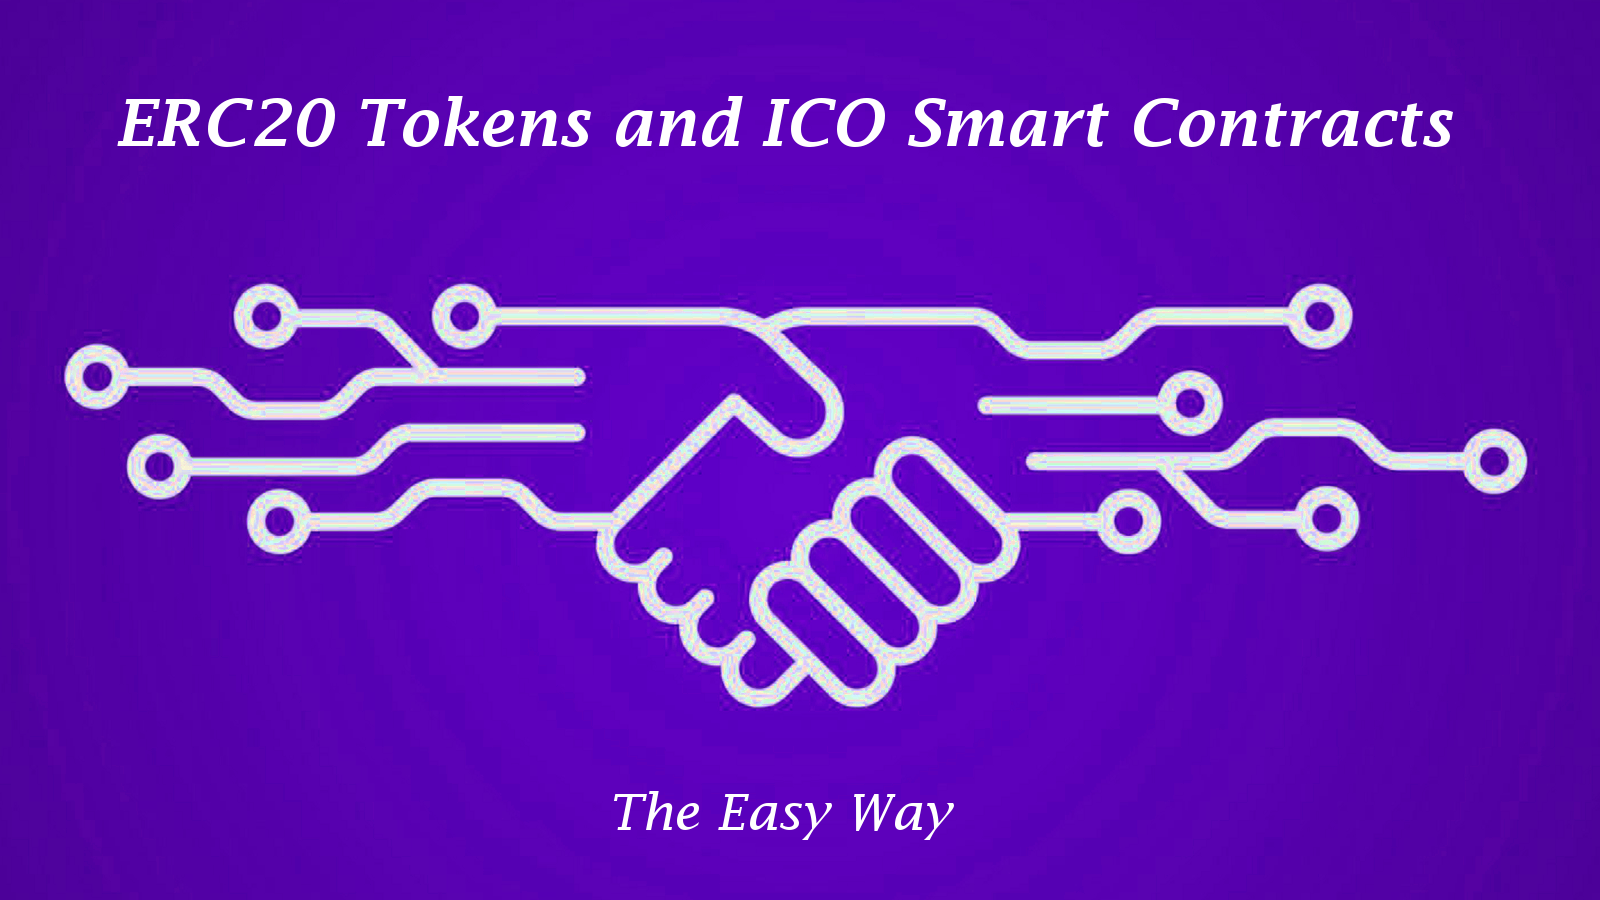 6 Steps to ERC20 Tokens and ICO Smart Contracts - Coinmonks